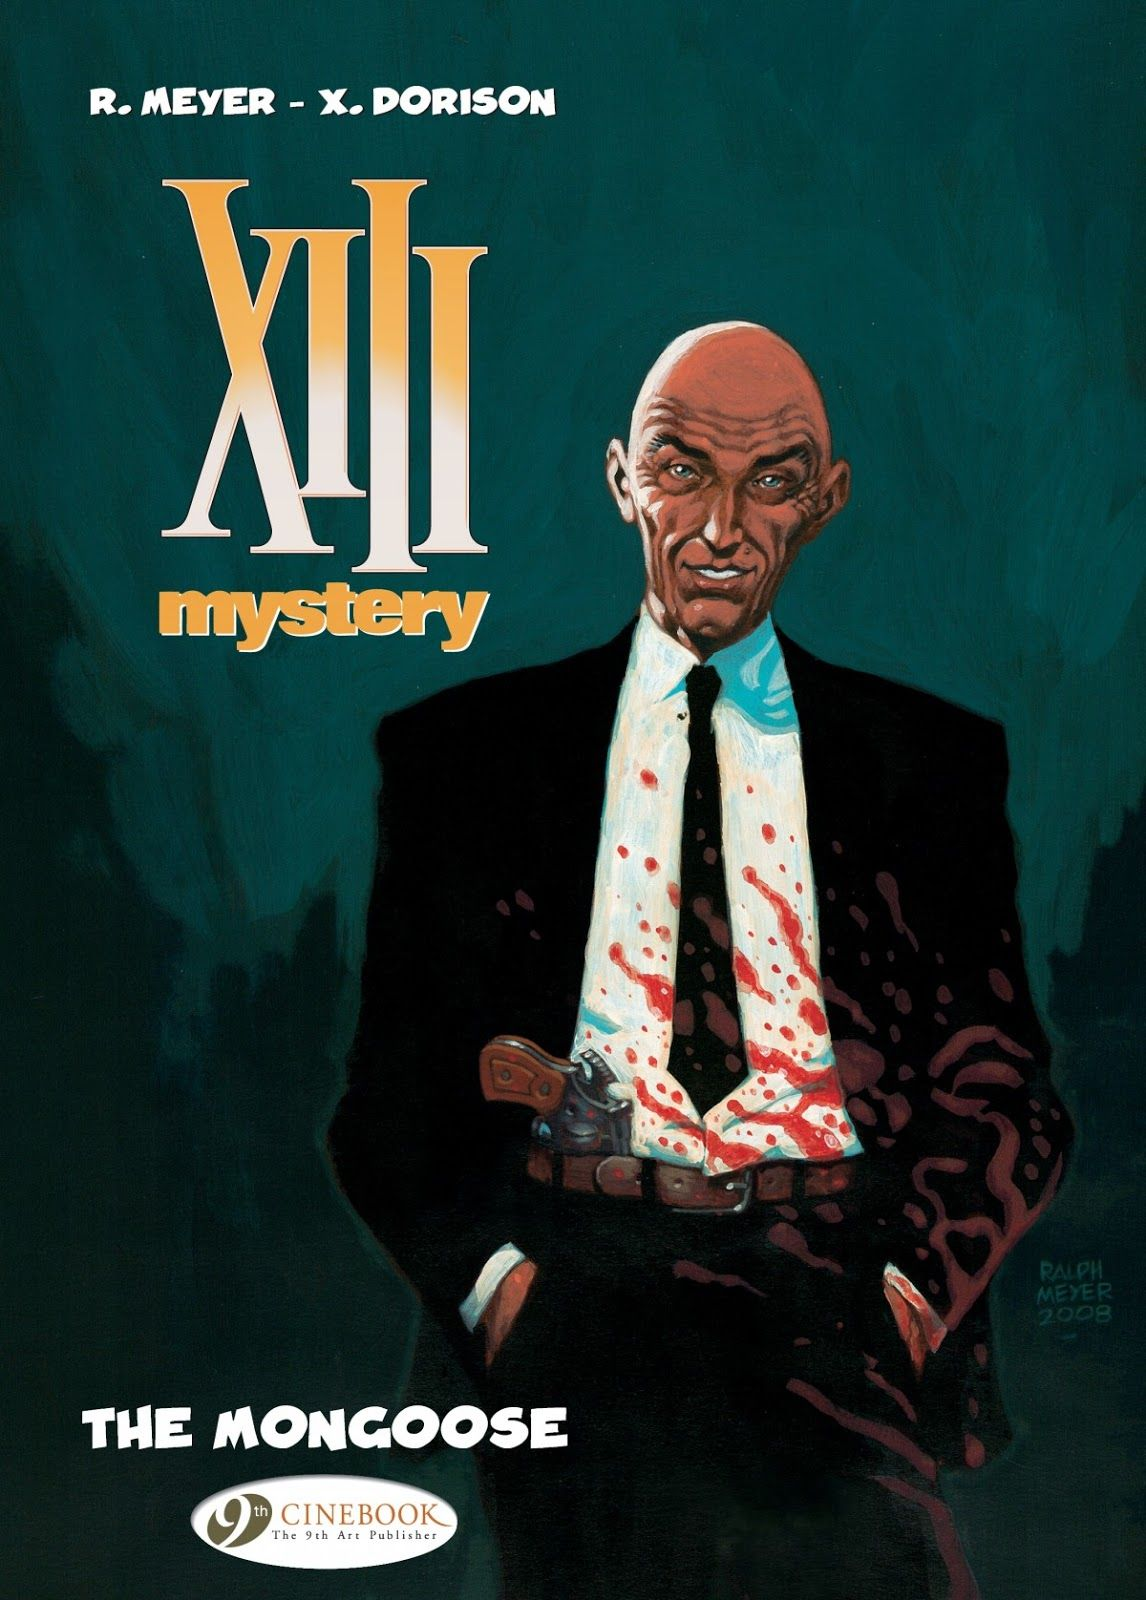 XIII Mystery Issue #1 - Read XIII Mystery Issue #1 comic online in high  quality